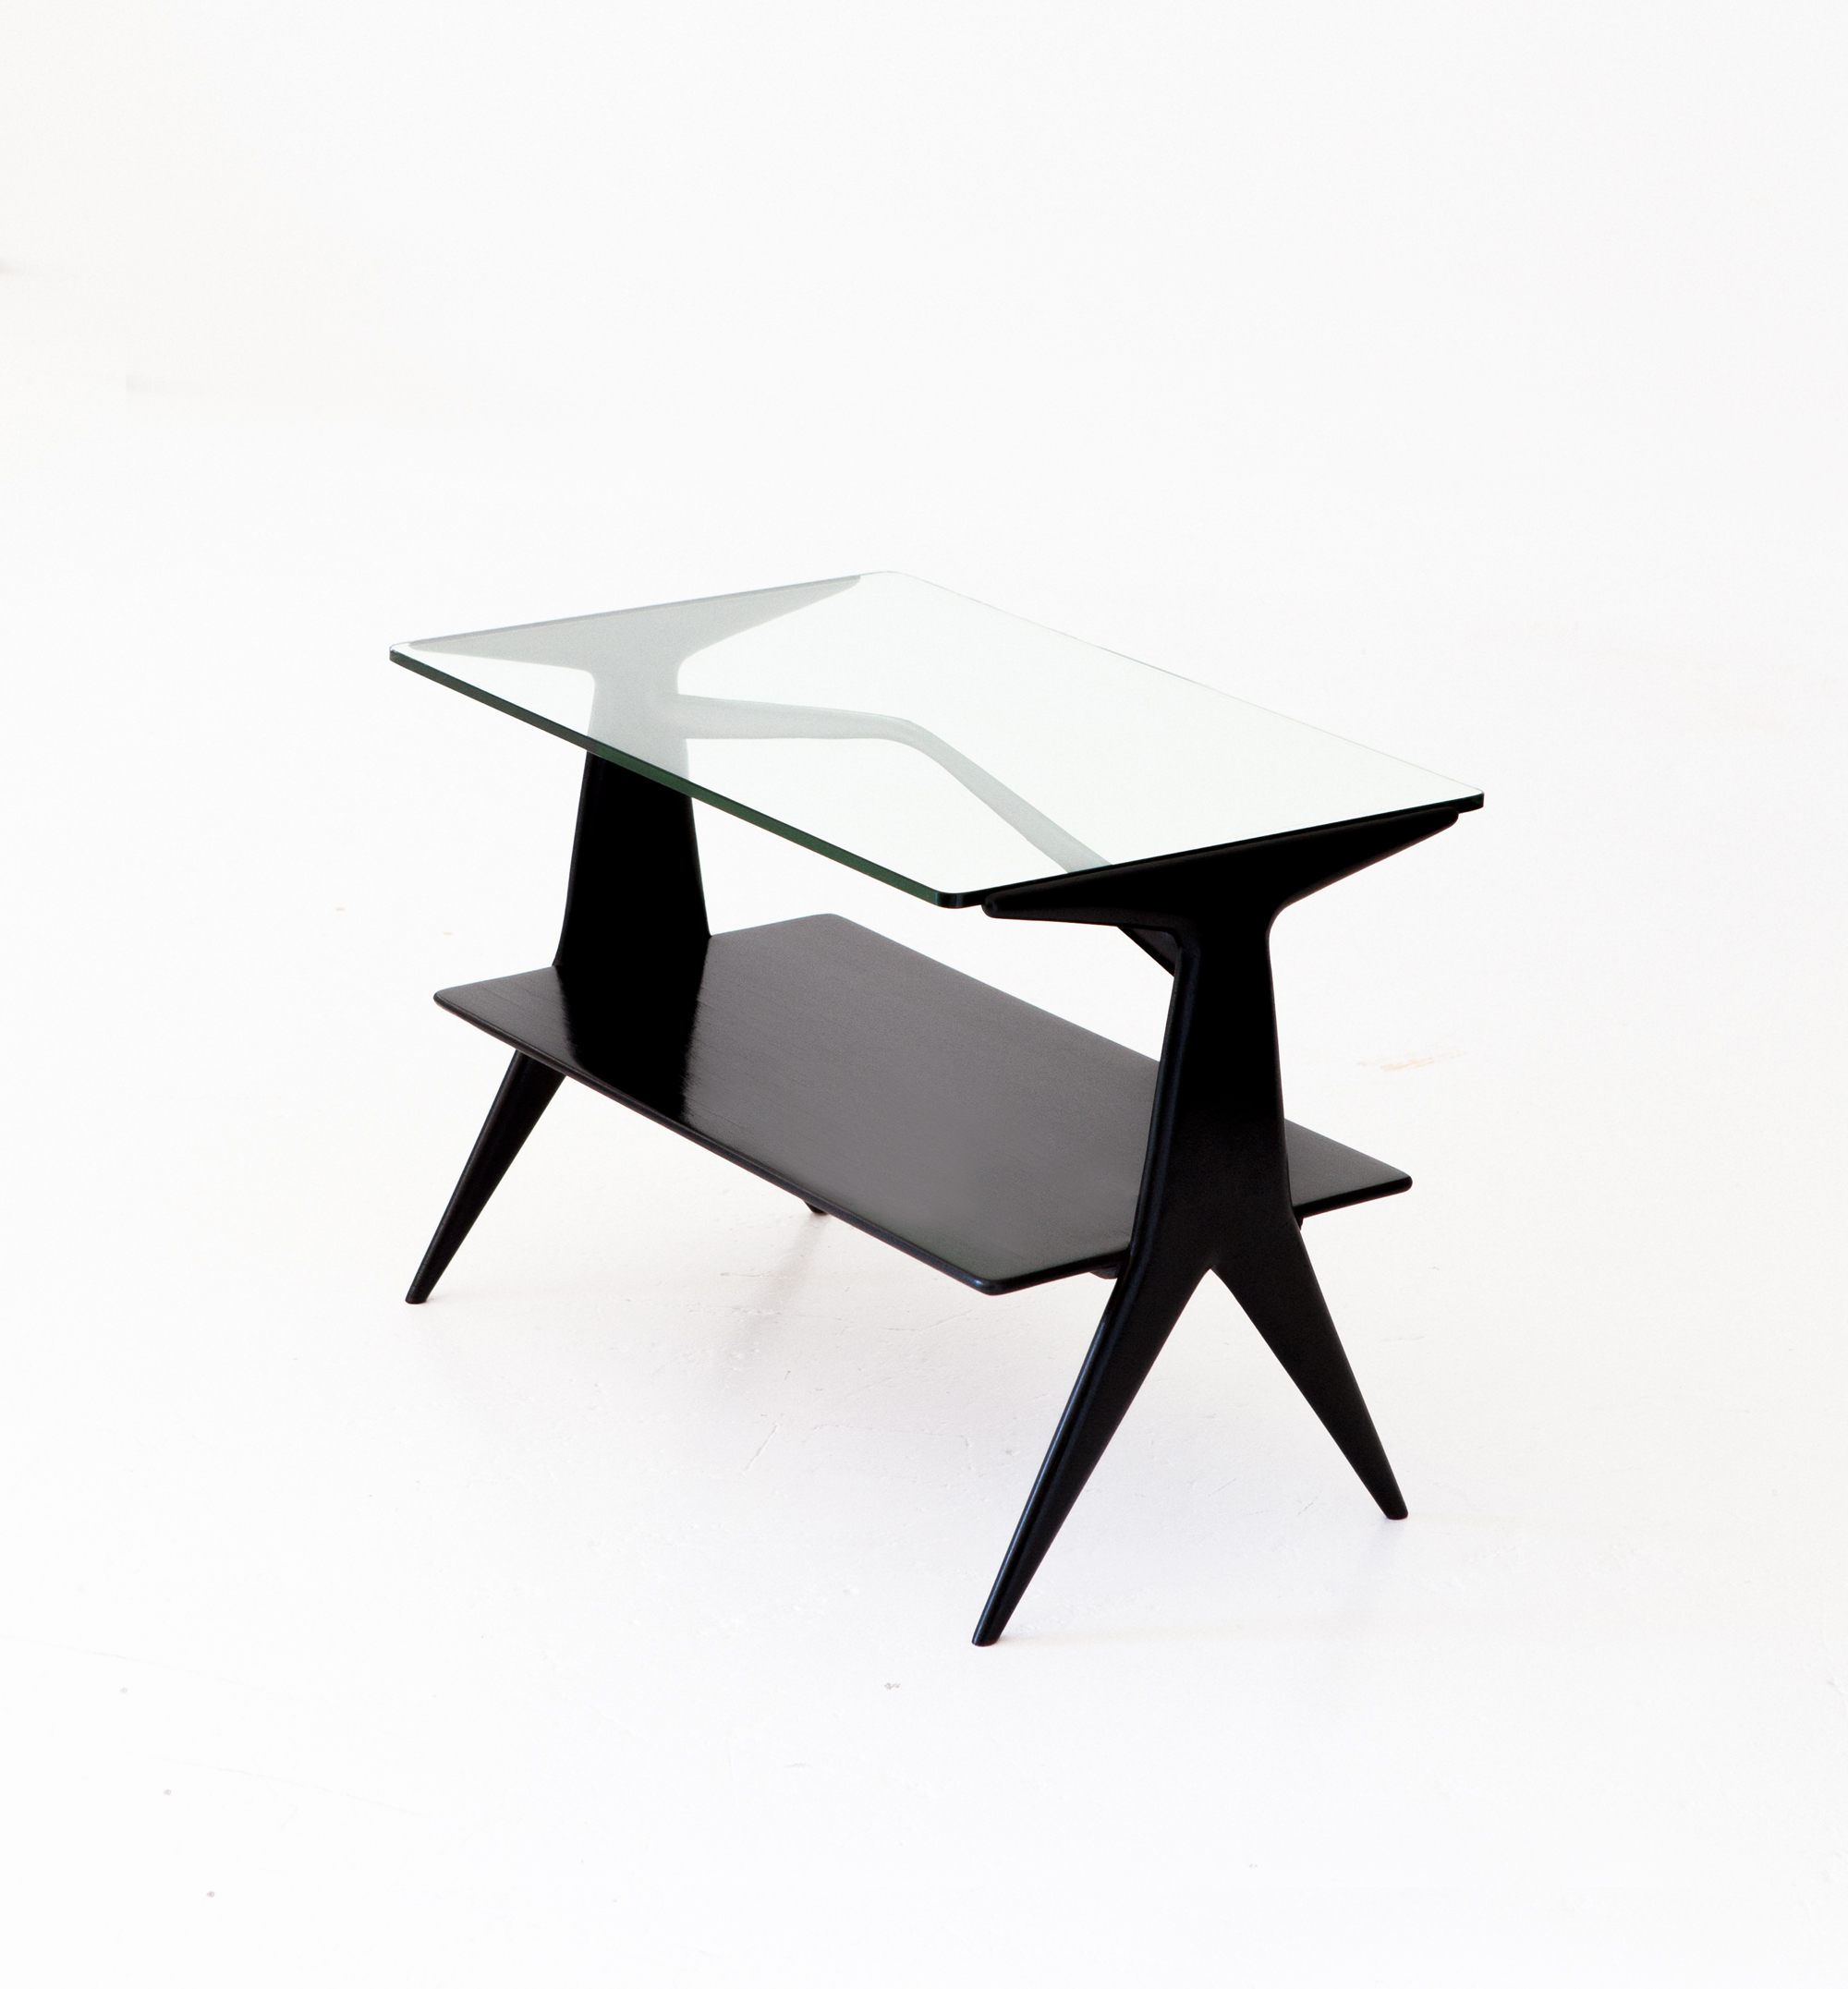 table-73.1